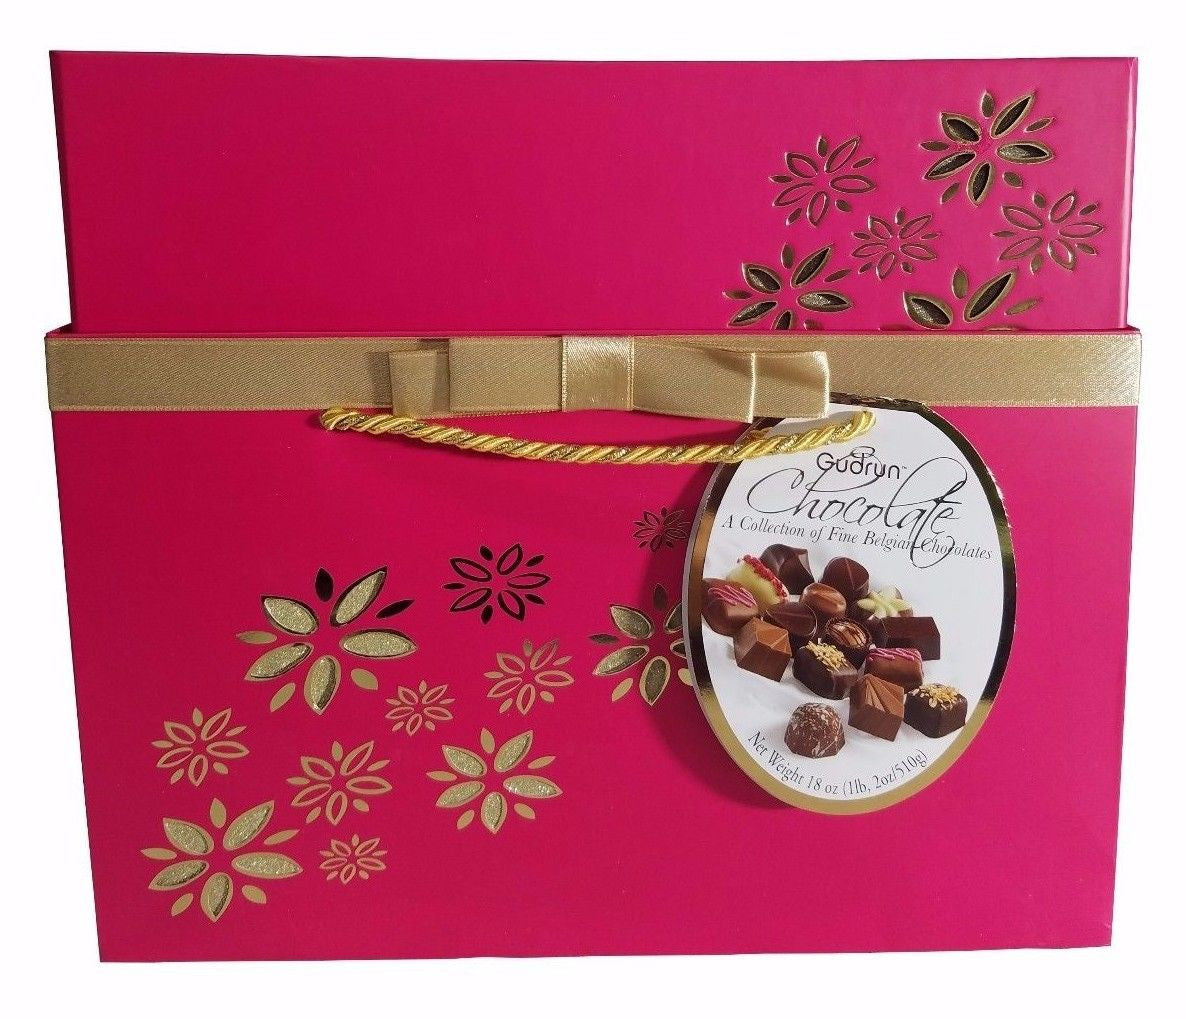 Gudrun Belgian Chocolate Fine Assorted Chocolates 18oz - Red Gift Box